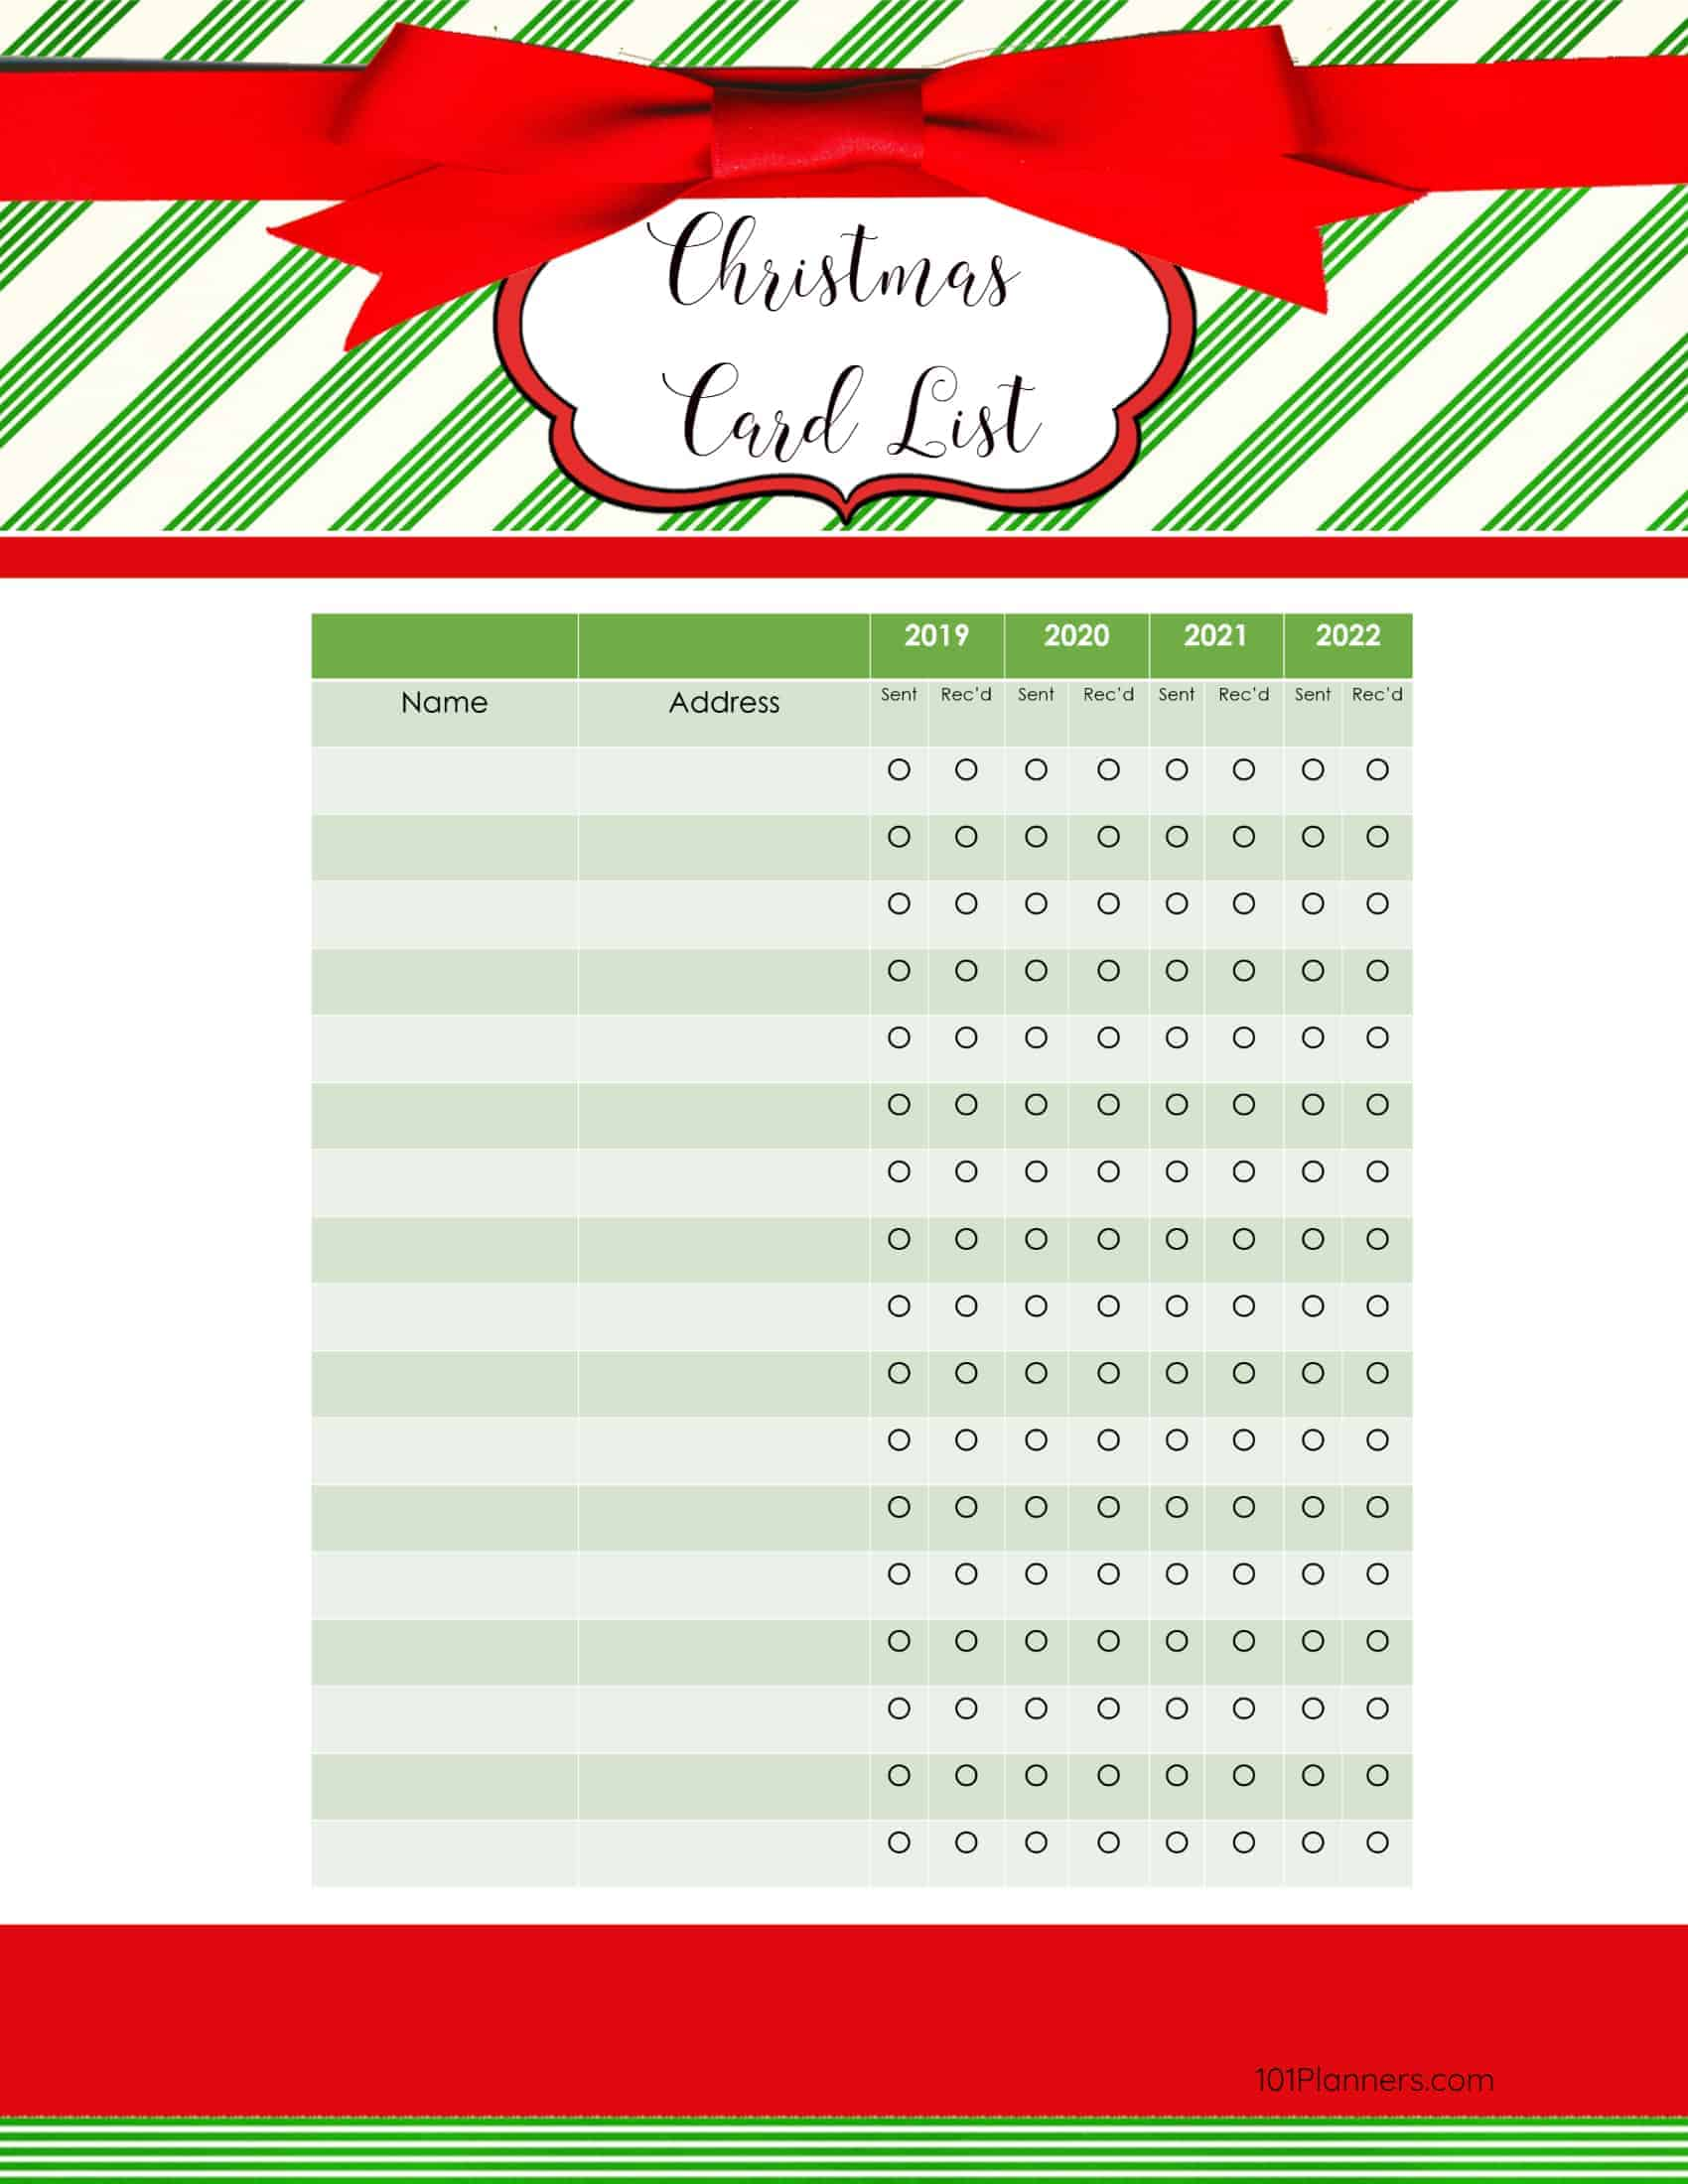 free printable christmas gift list template. Black Bedroom Furniture Sets. Home Design Ideas